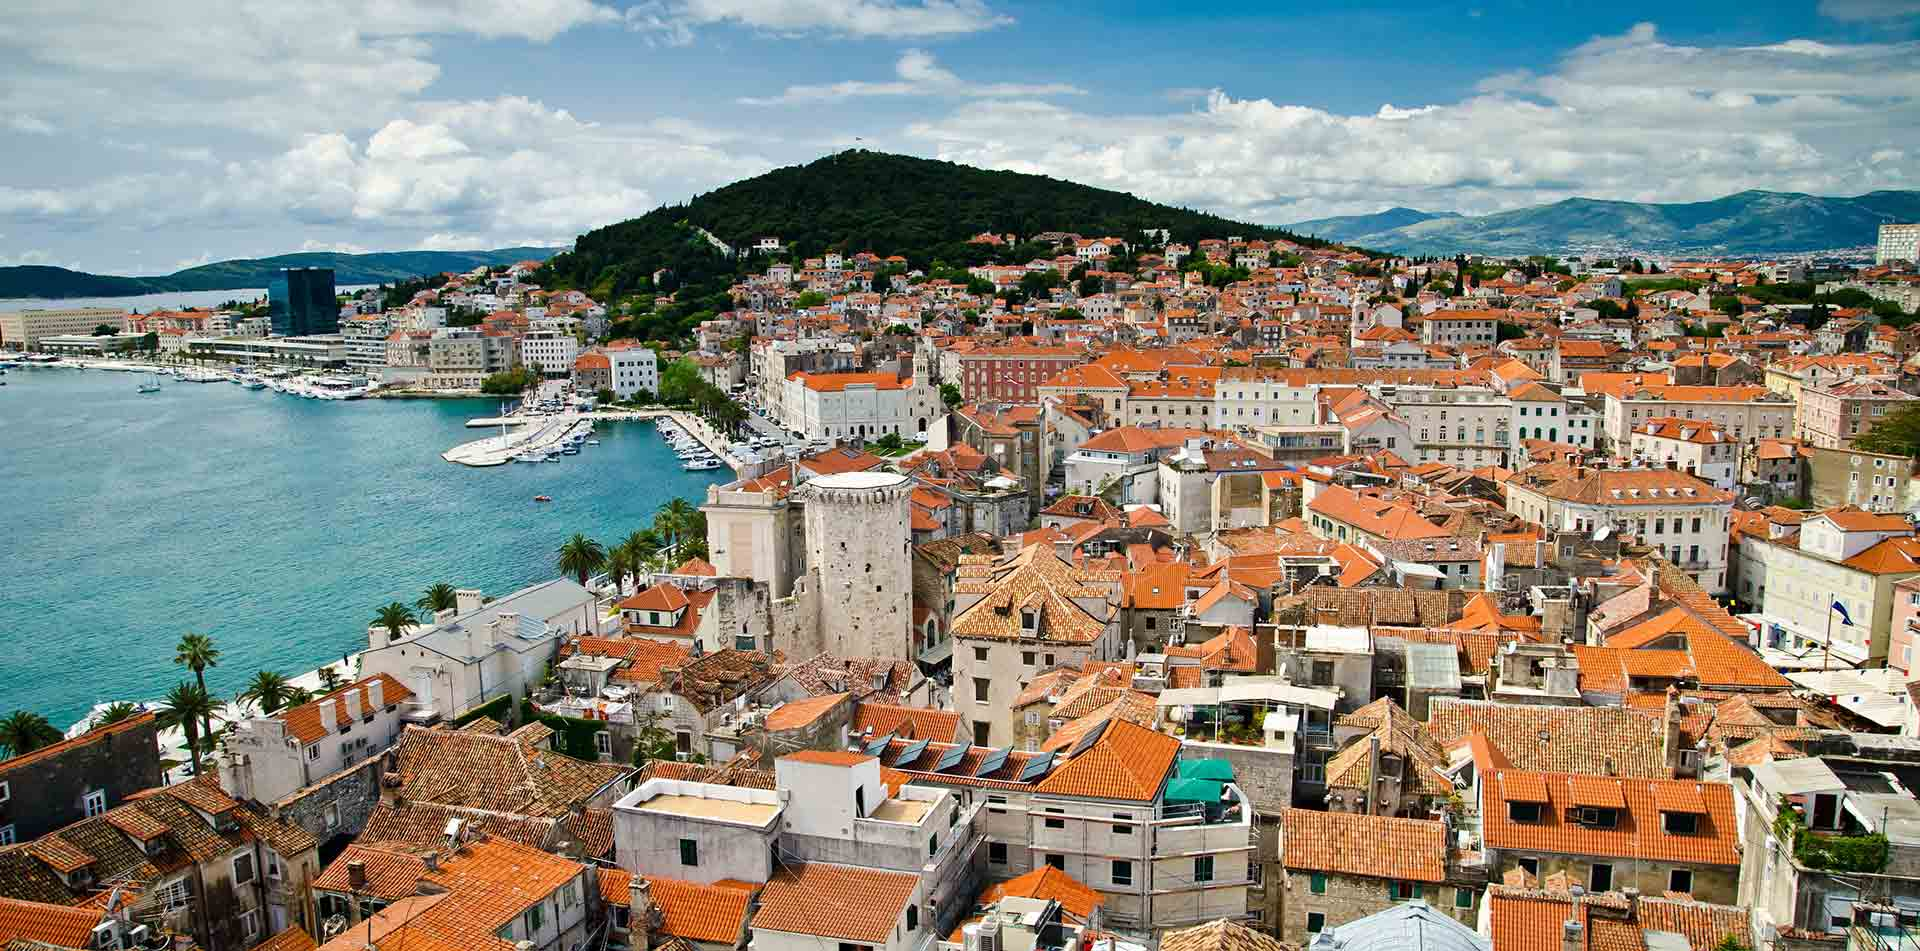 Europe Croatia Split Marjan Hill scenic historic town red tile roofs sparkling Adriatic Coast - luxury vacation destinations